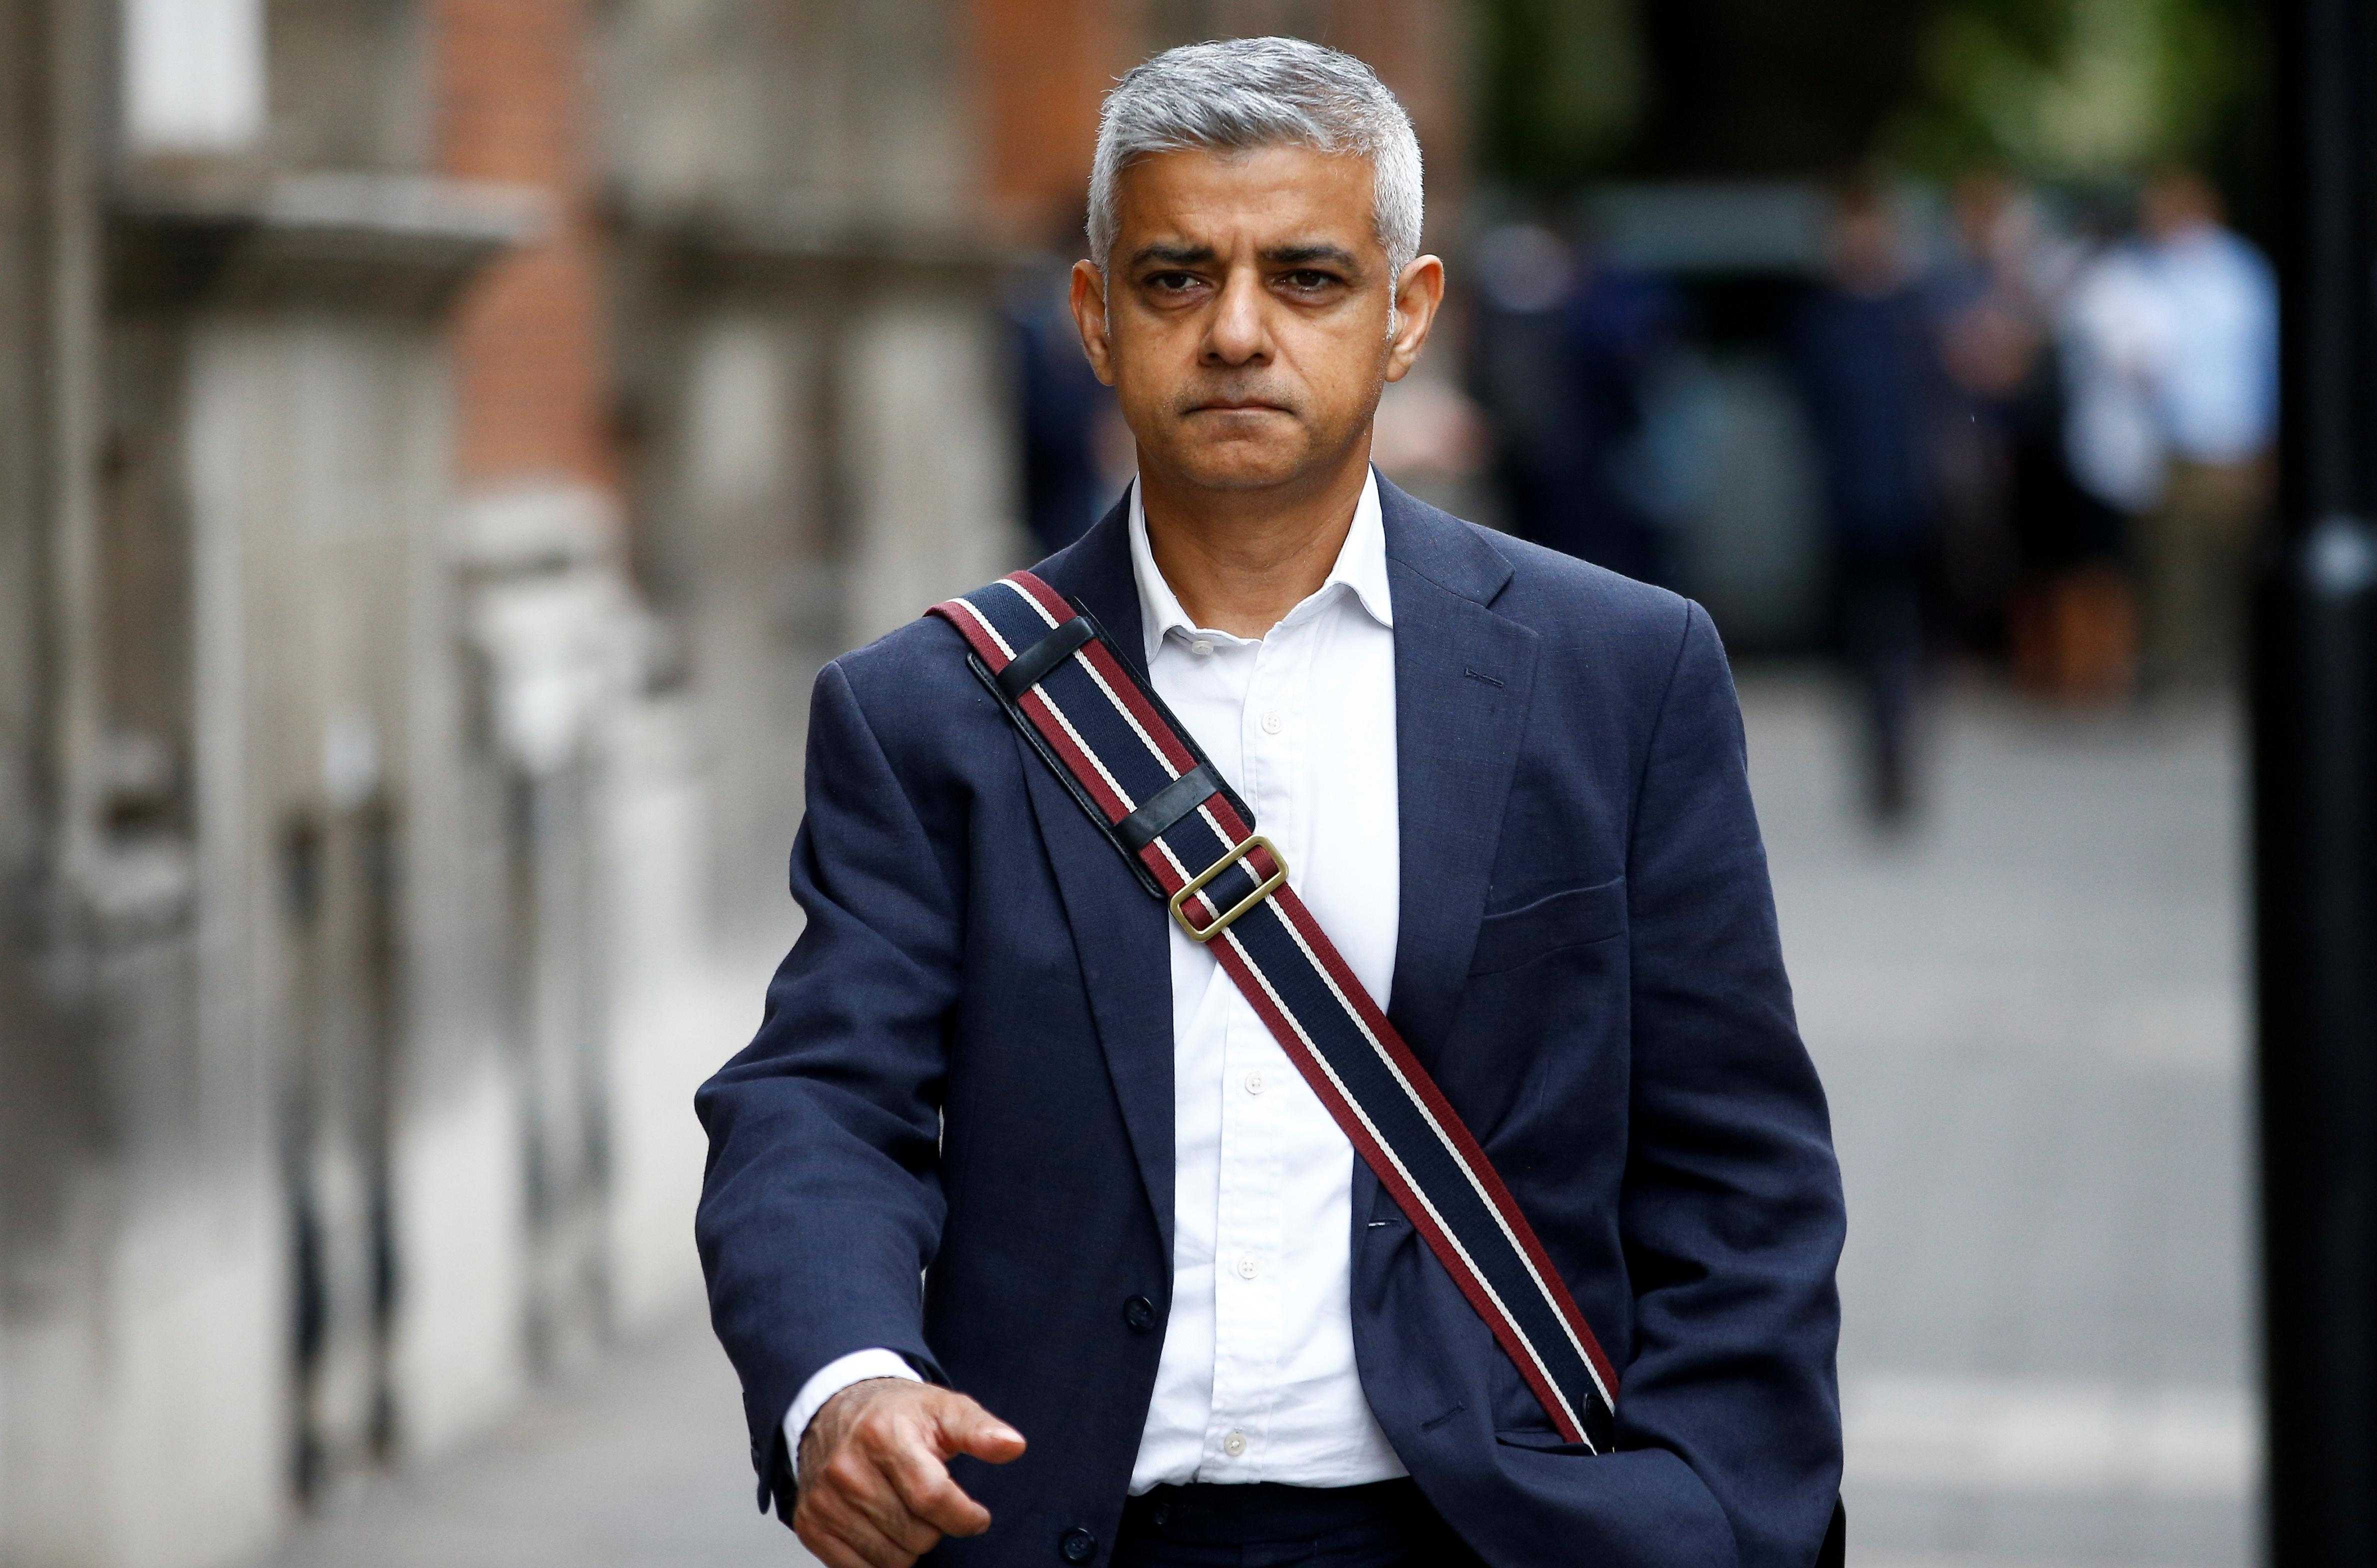 Rise of populists in Europe resembles eve of WW2, warns London mayor